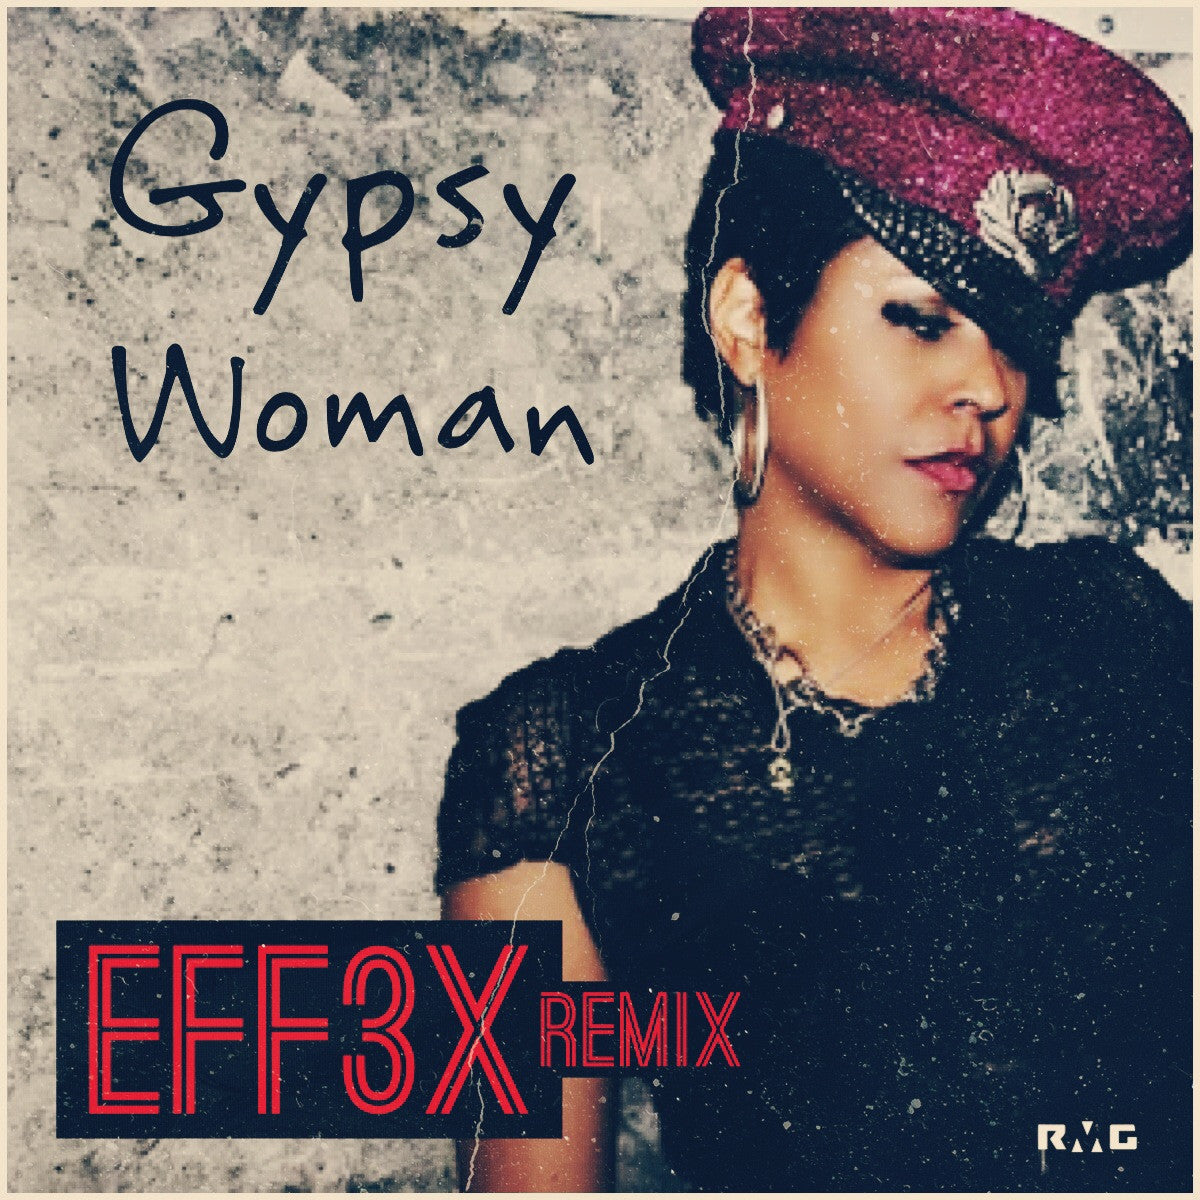 SINGLE - EFF3X - Gypsy Woman (Remix)